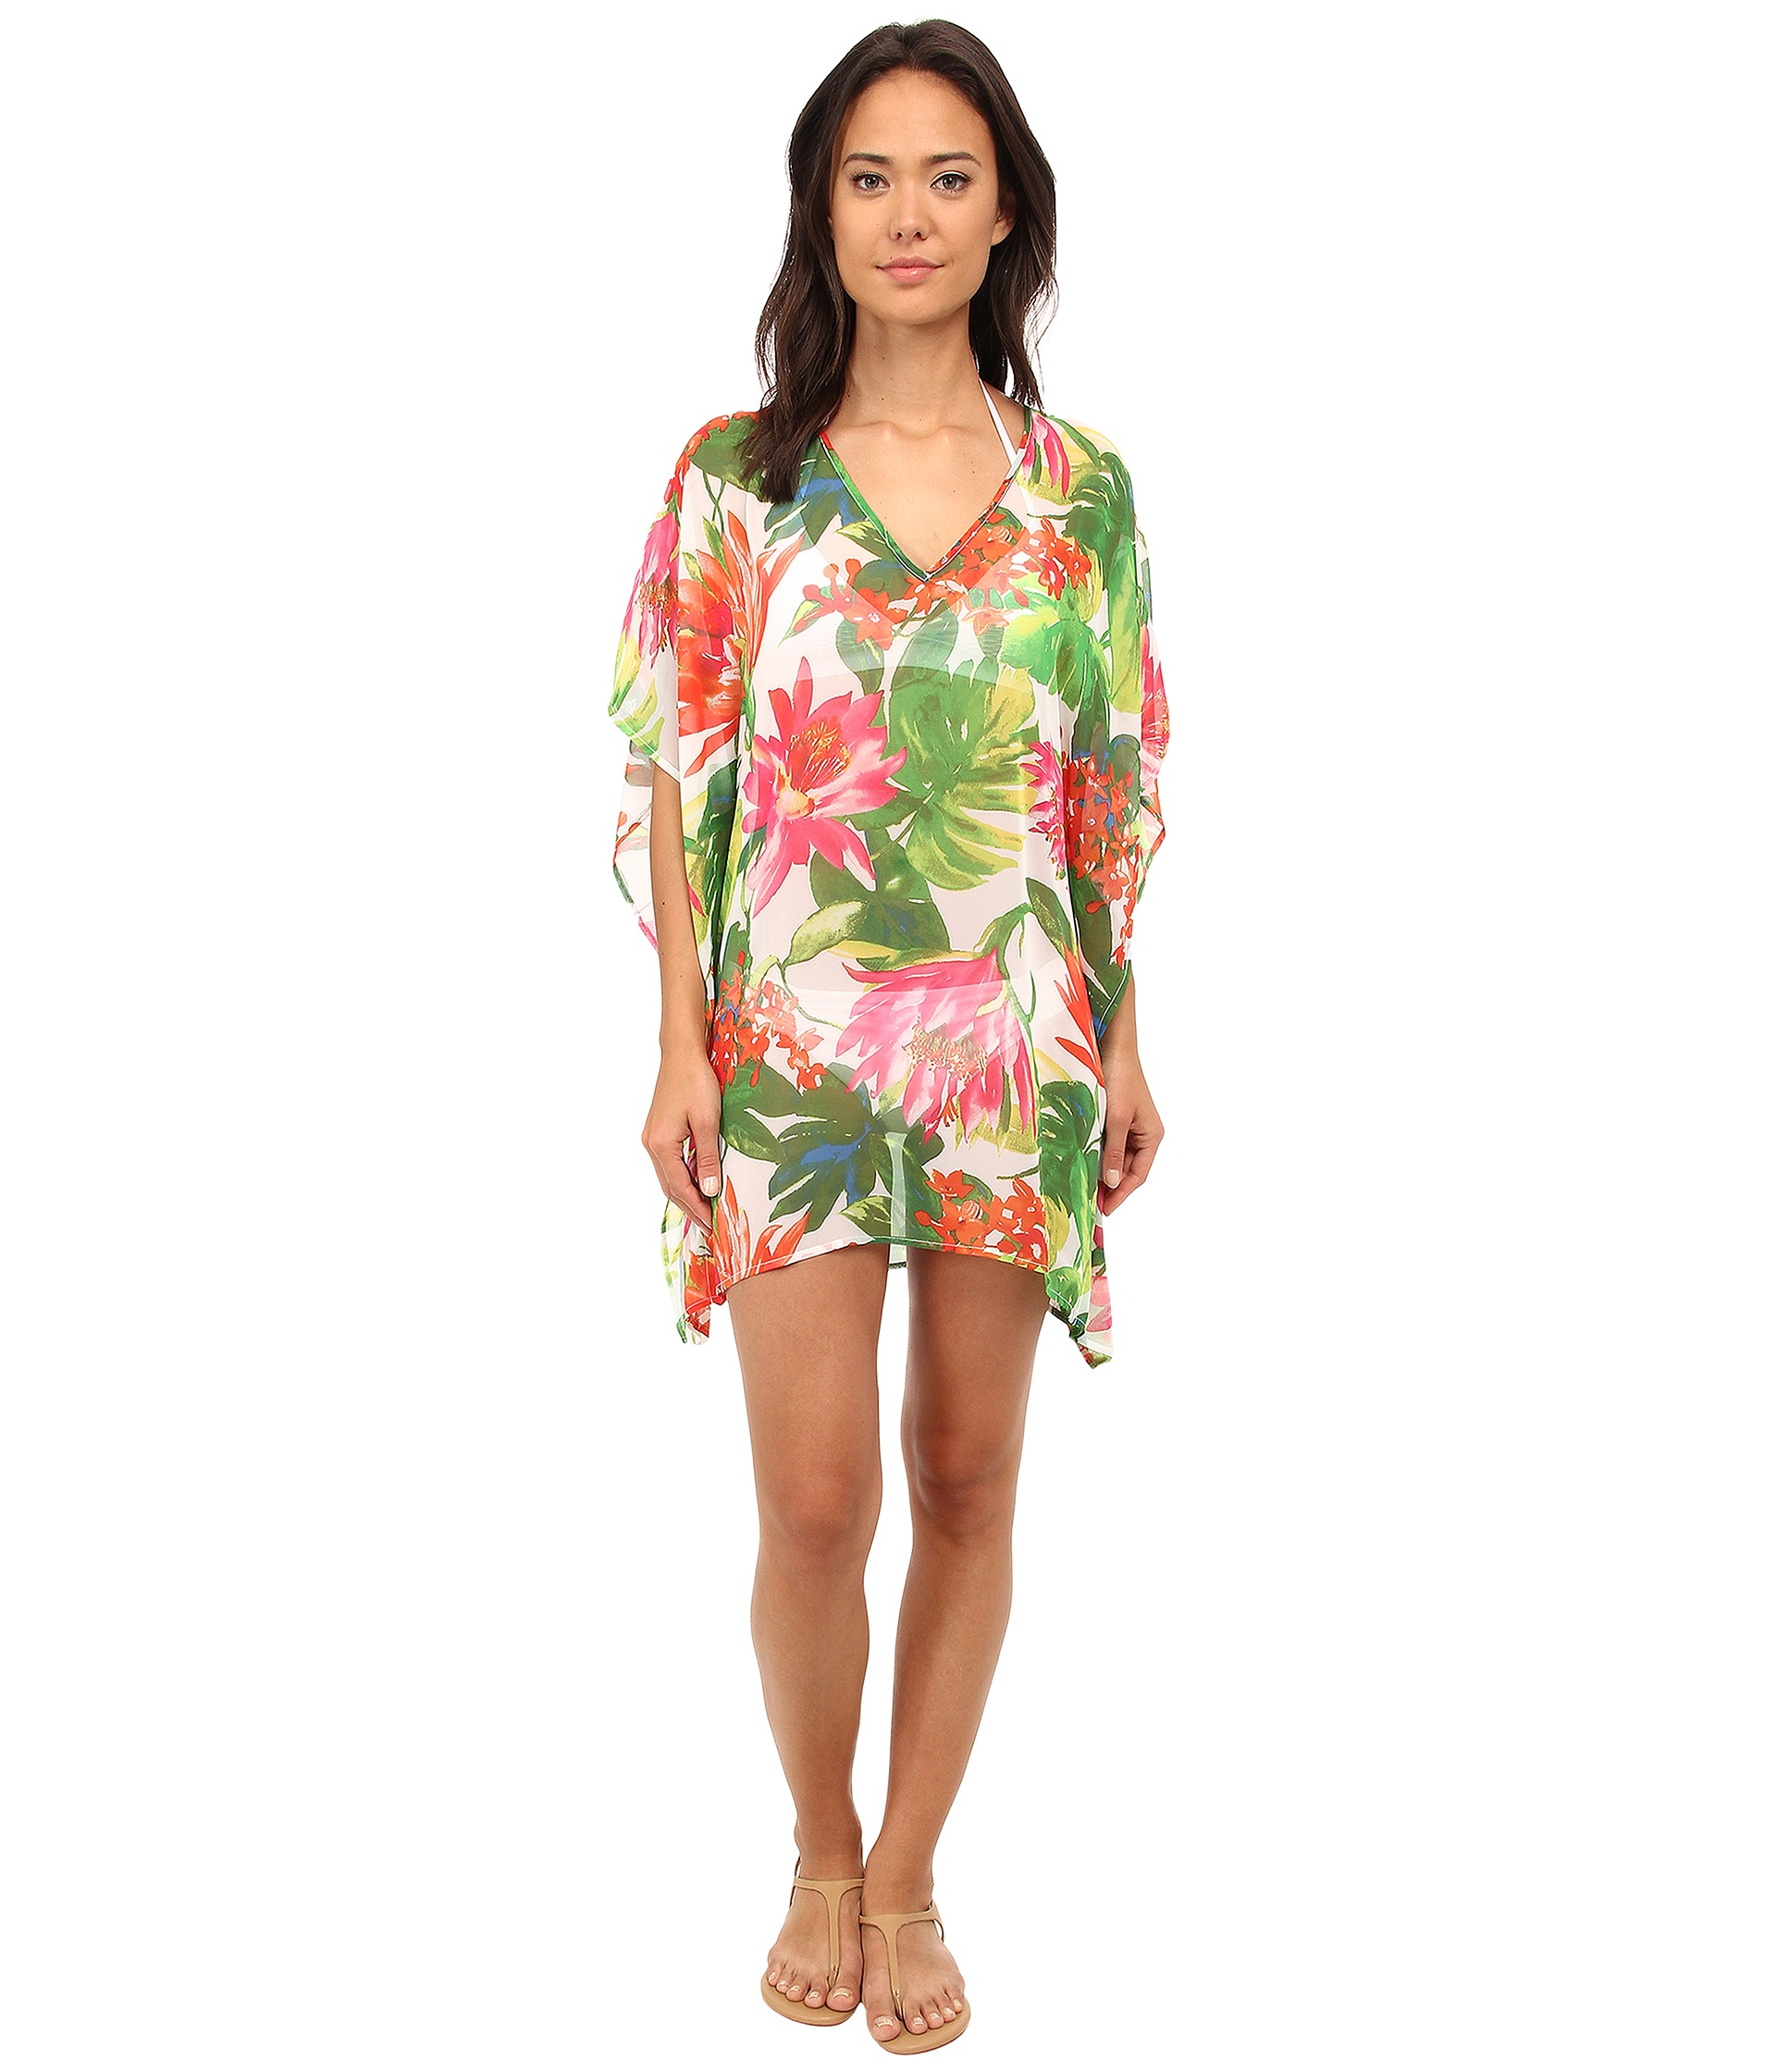 c6625041099f9 Lyst - Tommy Bahama White Tropical Tunic Cover-up in Green